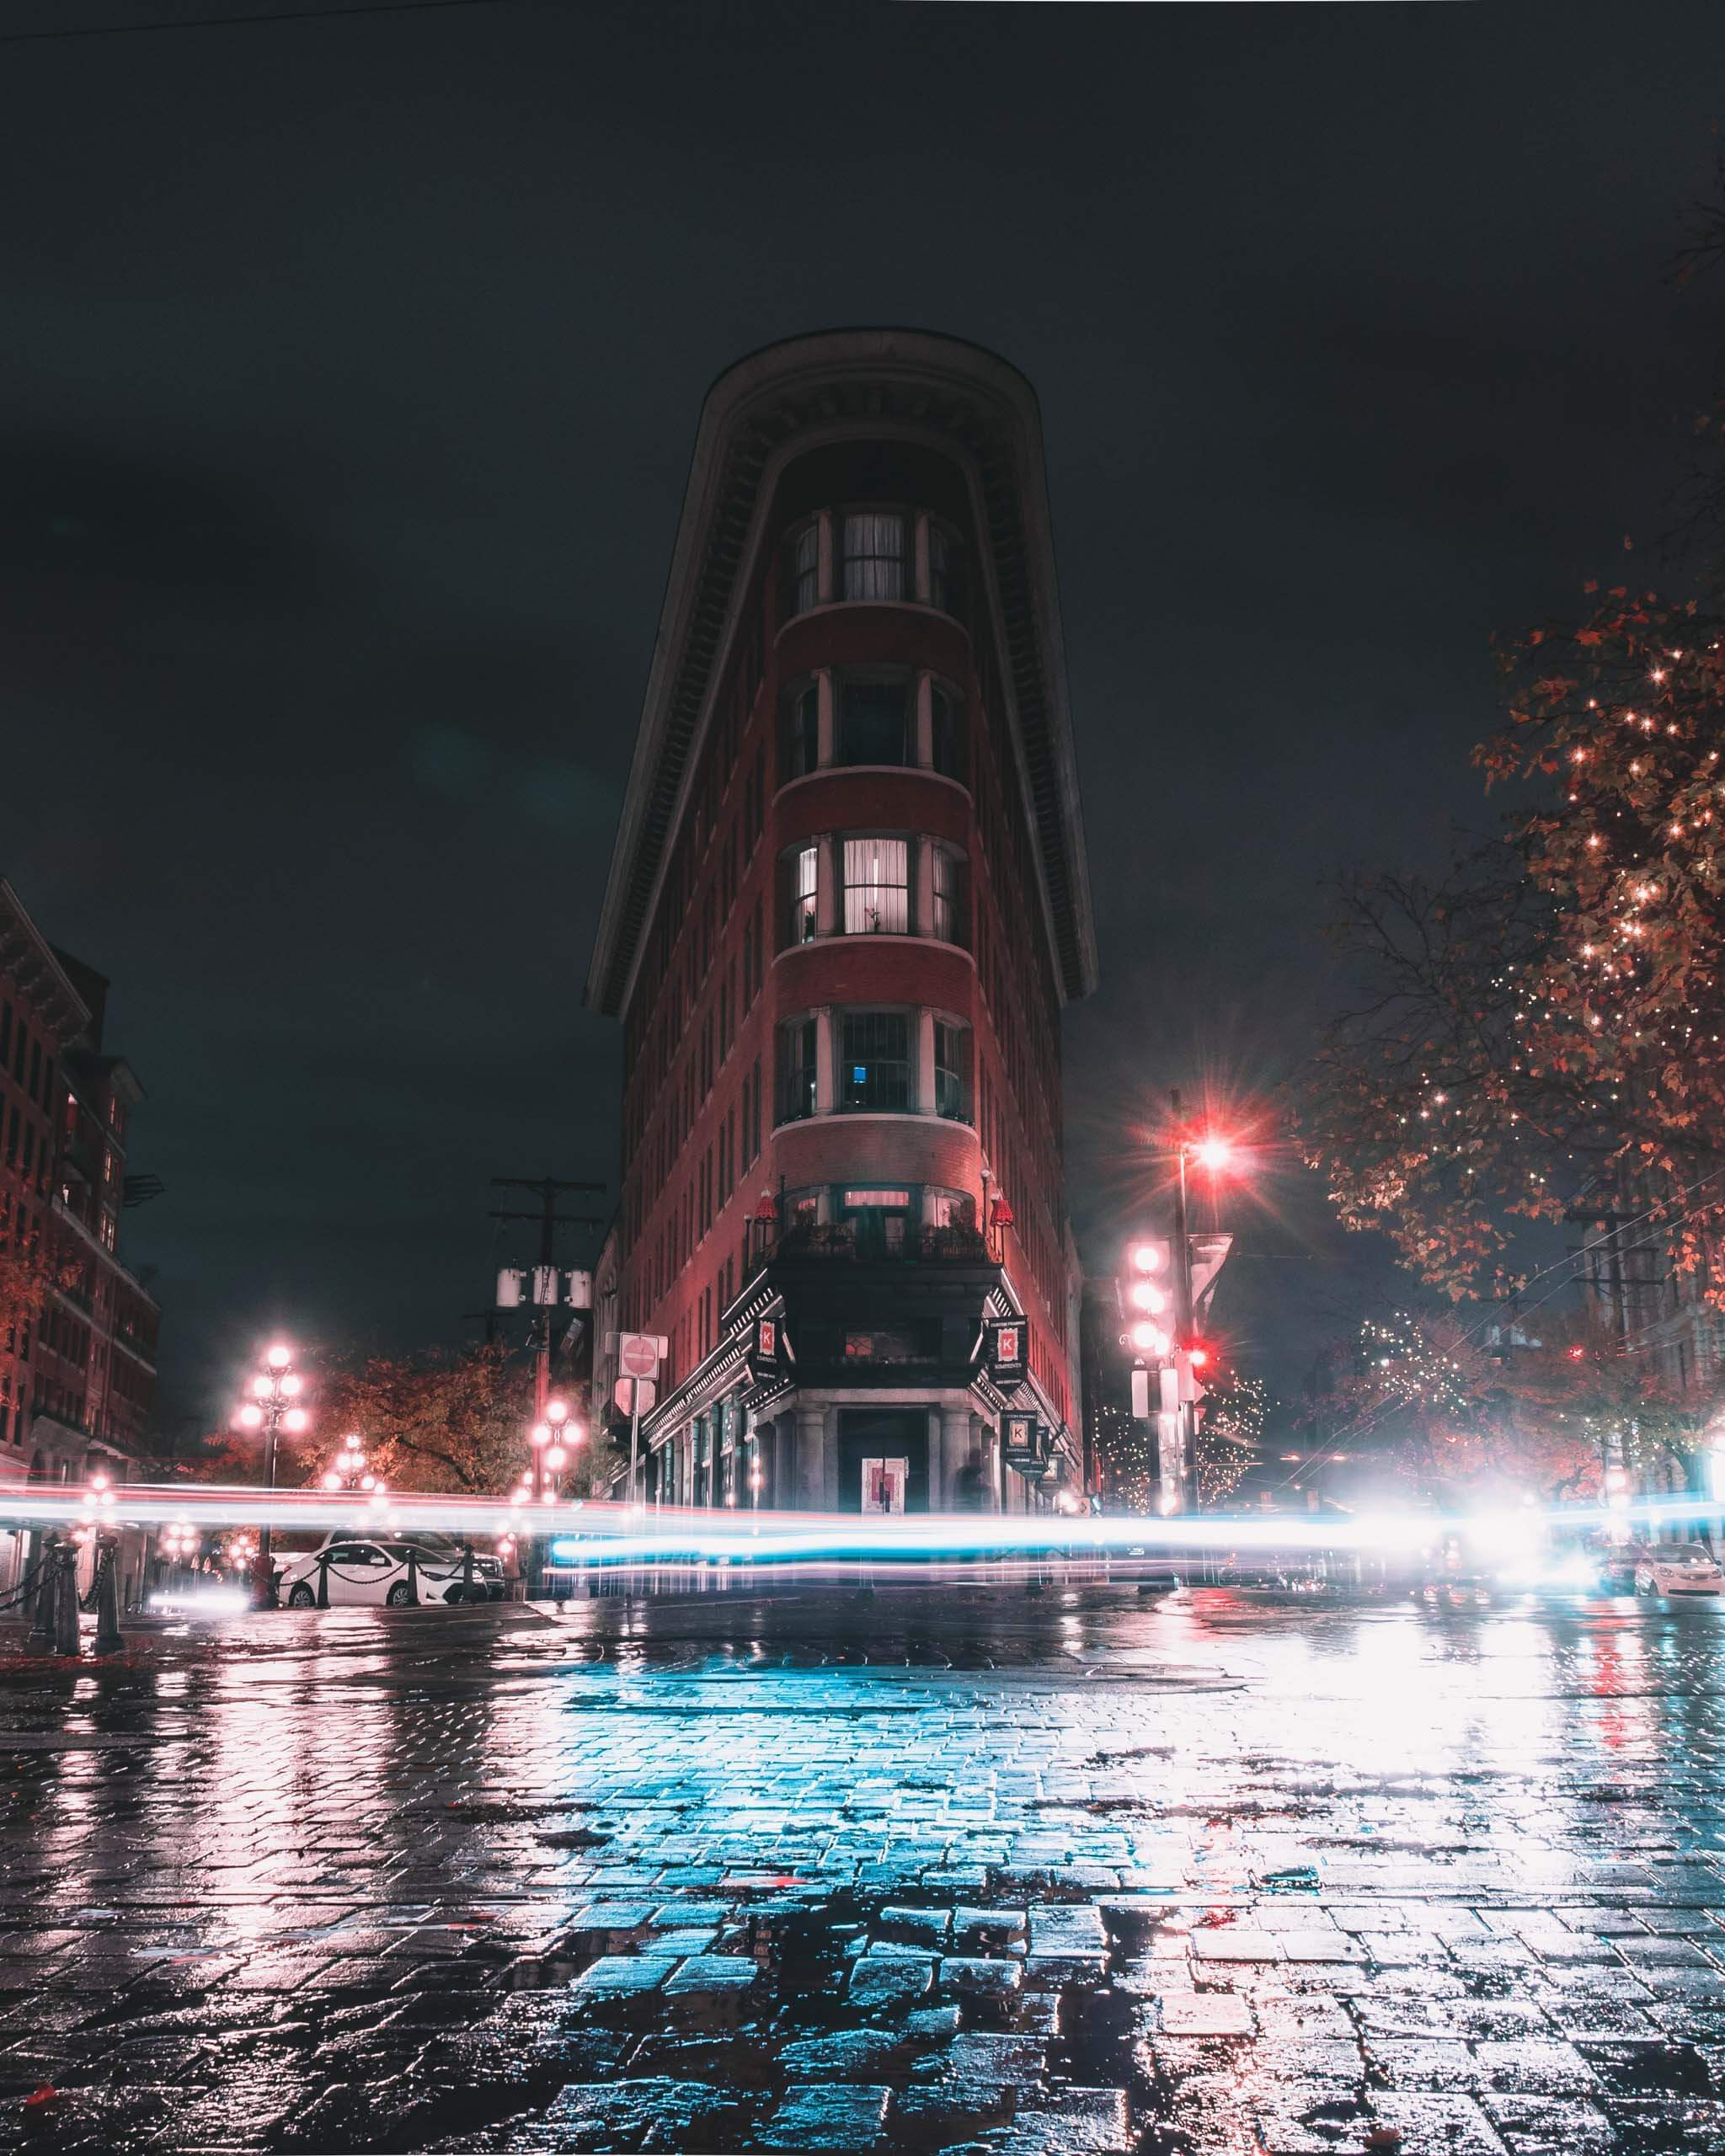 Gastown time lapse photo at night